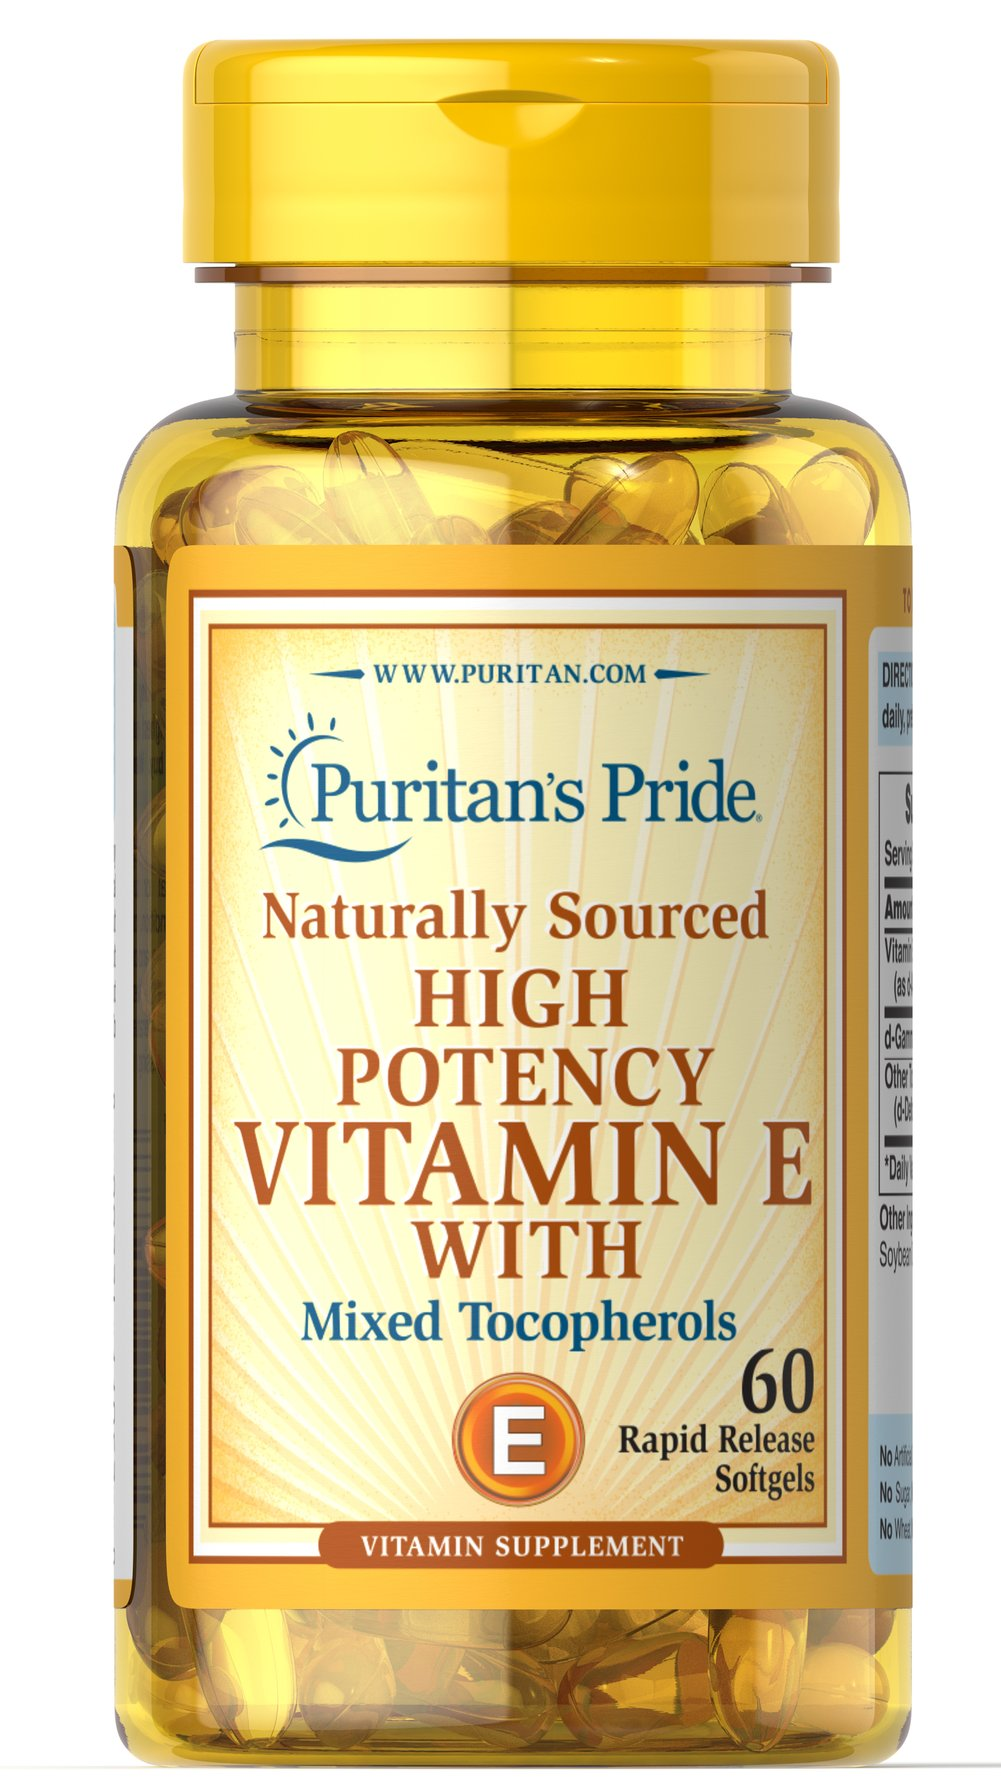 Vitamin E Complex High Gamma Natural <p>Superior Blend of <b>d-Gamma Tocopherol</b> with Other Vitamin E Tocopherols</p> <p>Gamma-tocopherol is an important Vitamin E component.** High Gamma Tocopherol is a concentrated blend of both gamma and alpha-tocopherols (plus tocotrienols), which support heart health and have exceptional antioxidant properties.**</p> 60 Softgels  $24.99